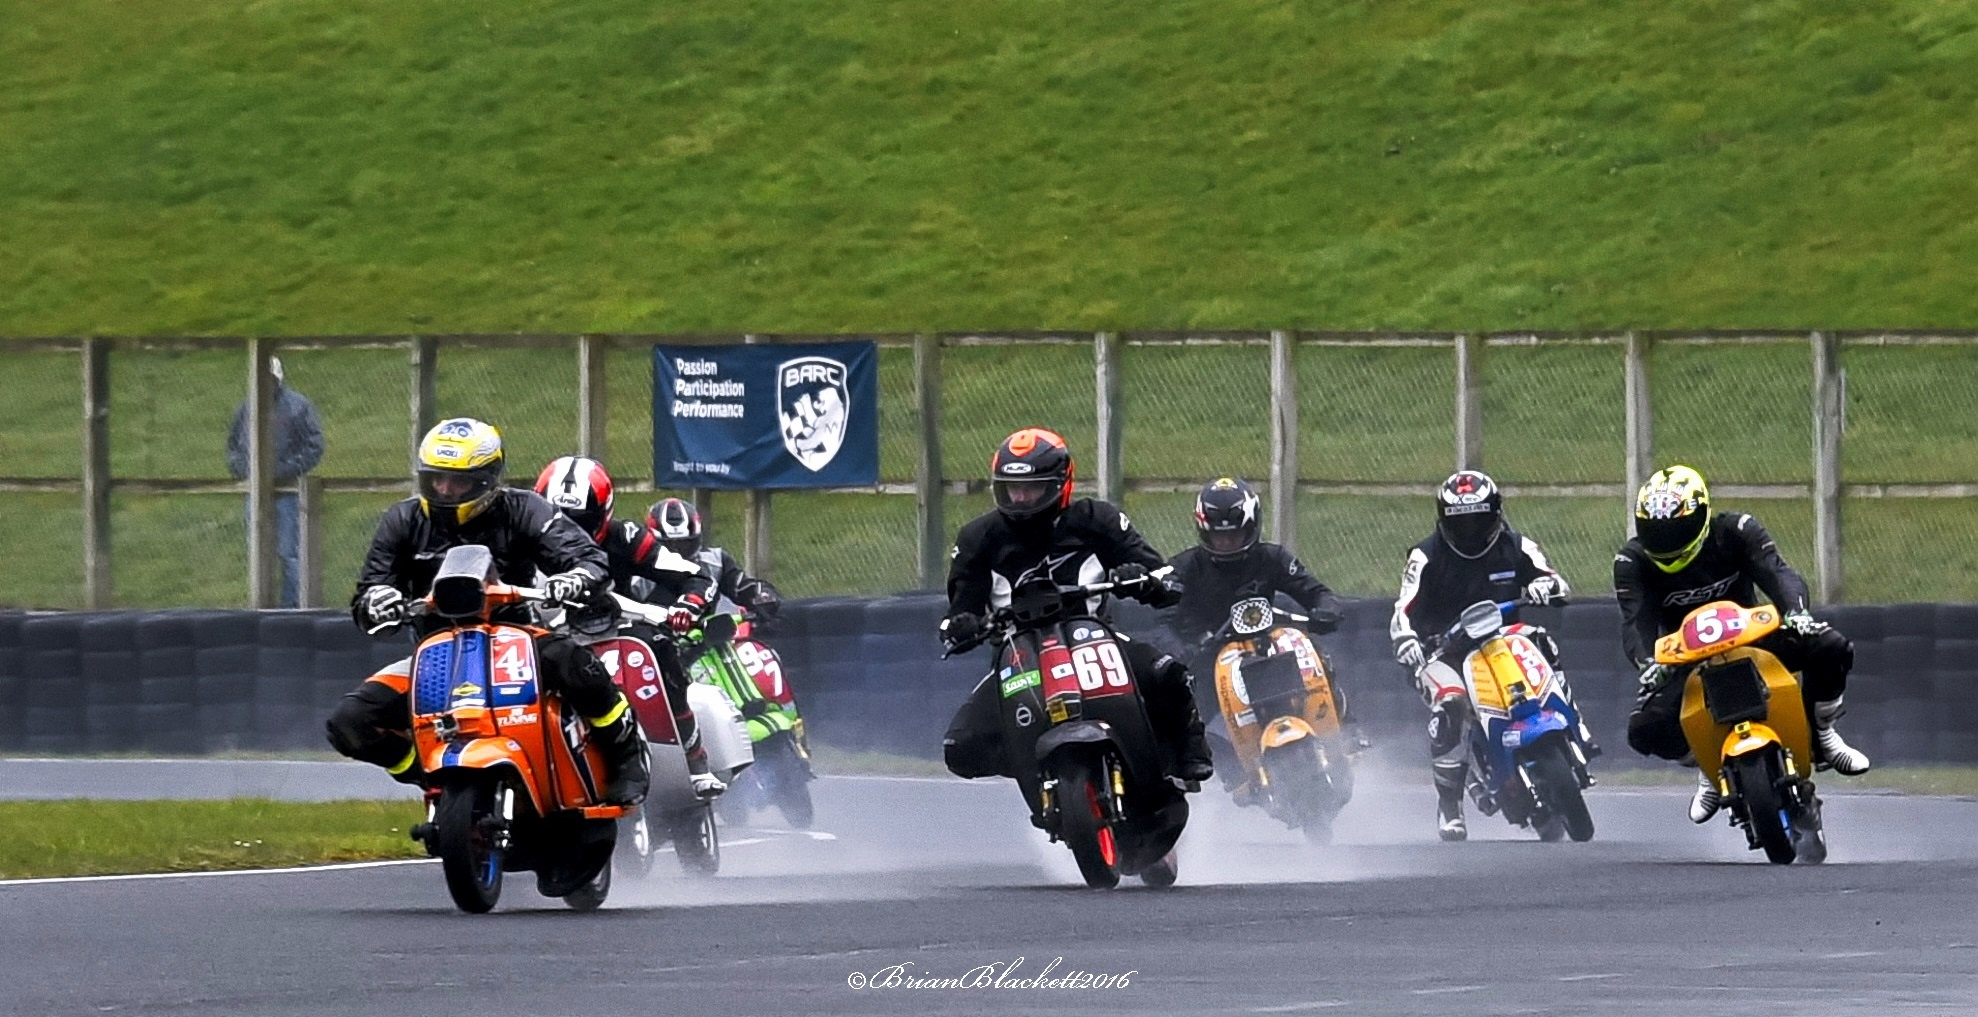 Scooter Racing Yesterday Croft Circuit North Yorkshire by brianblackett